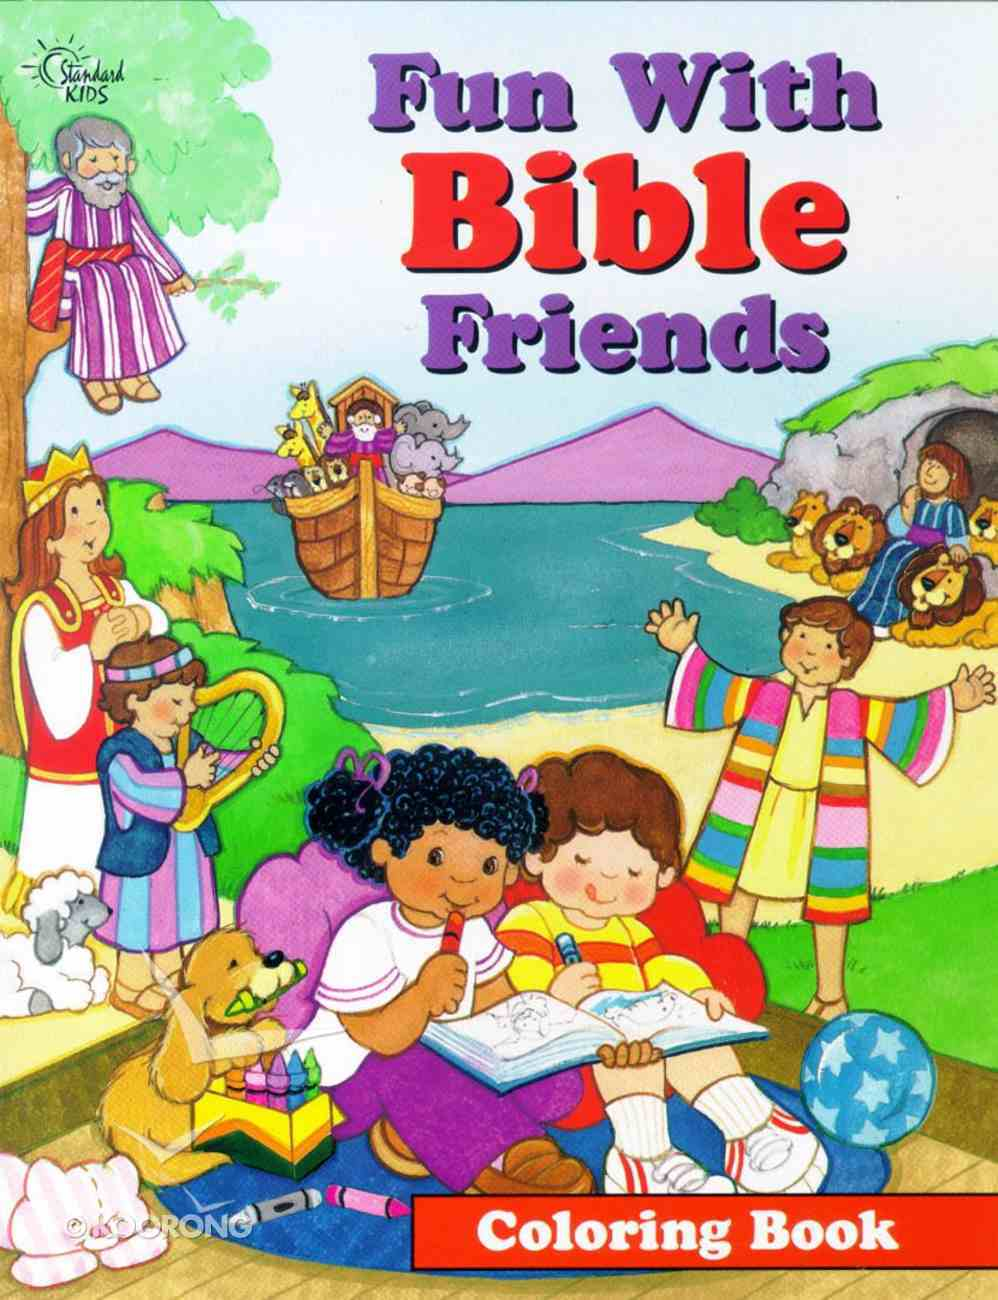 Fun With Bible Friends (Colouring Book) Paperback